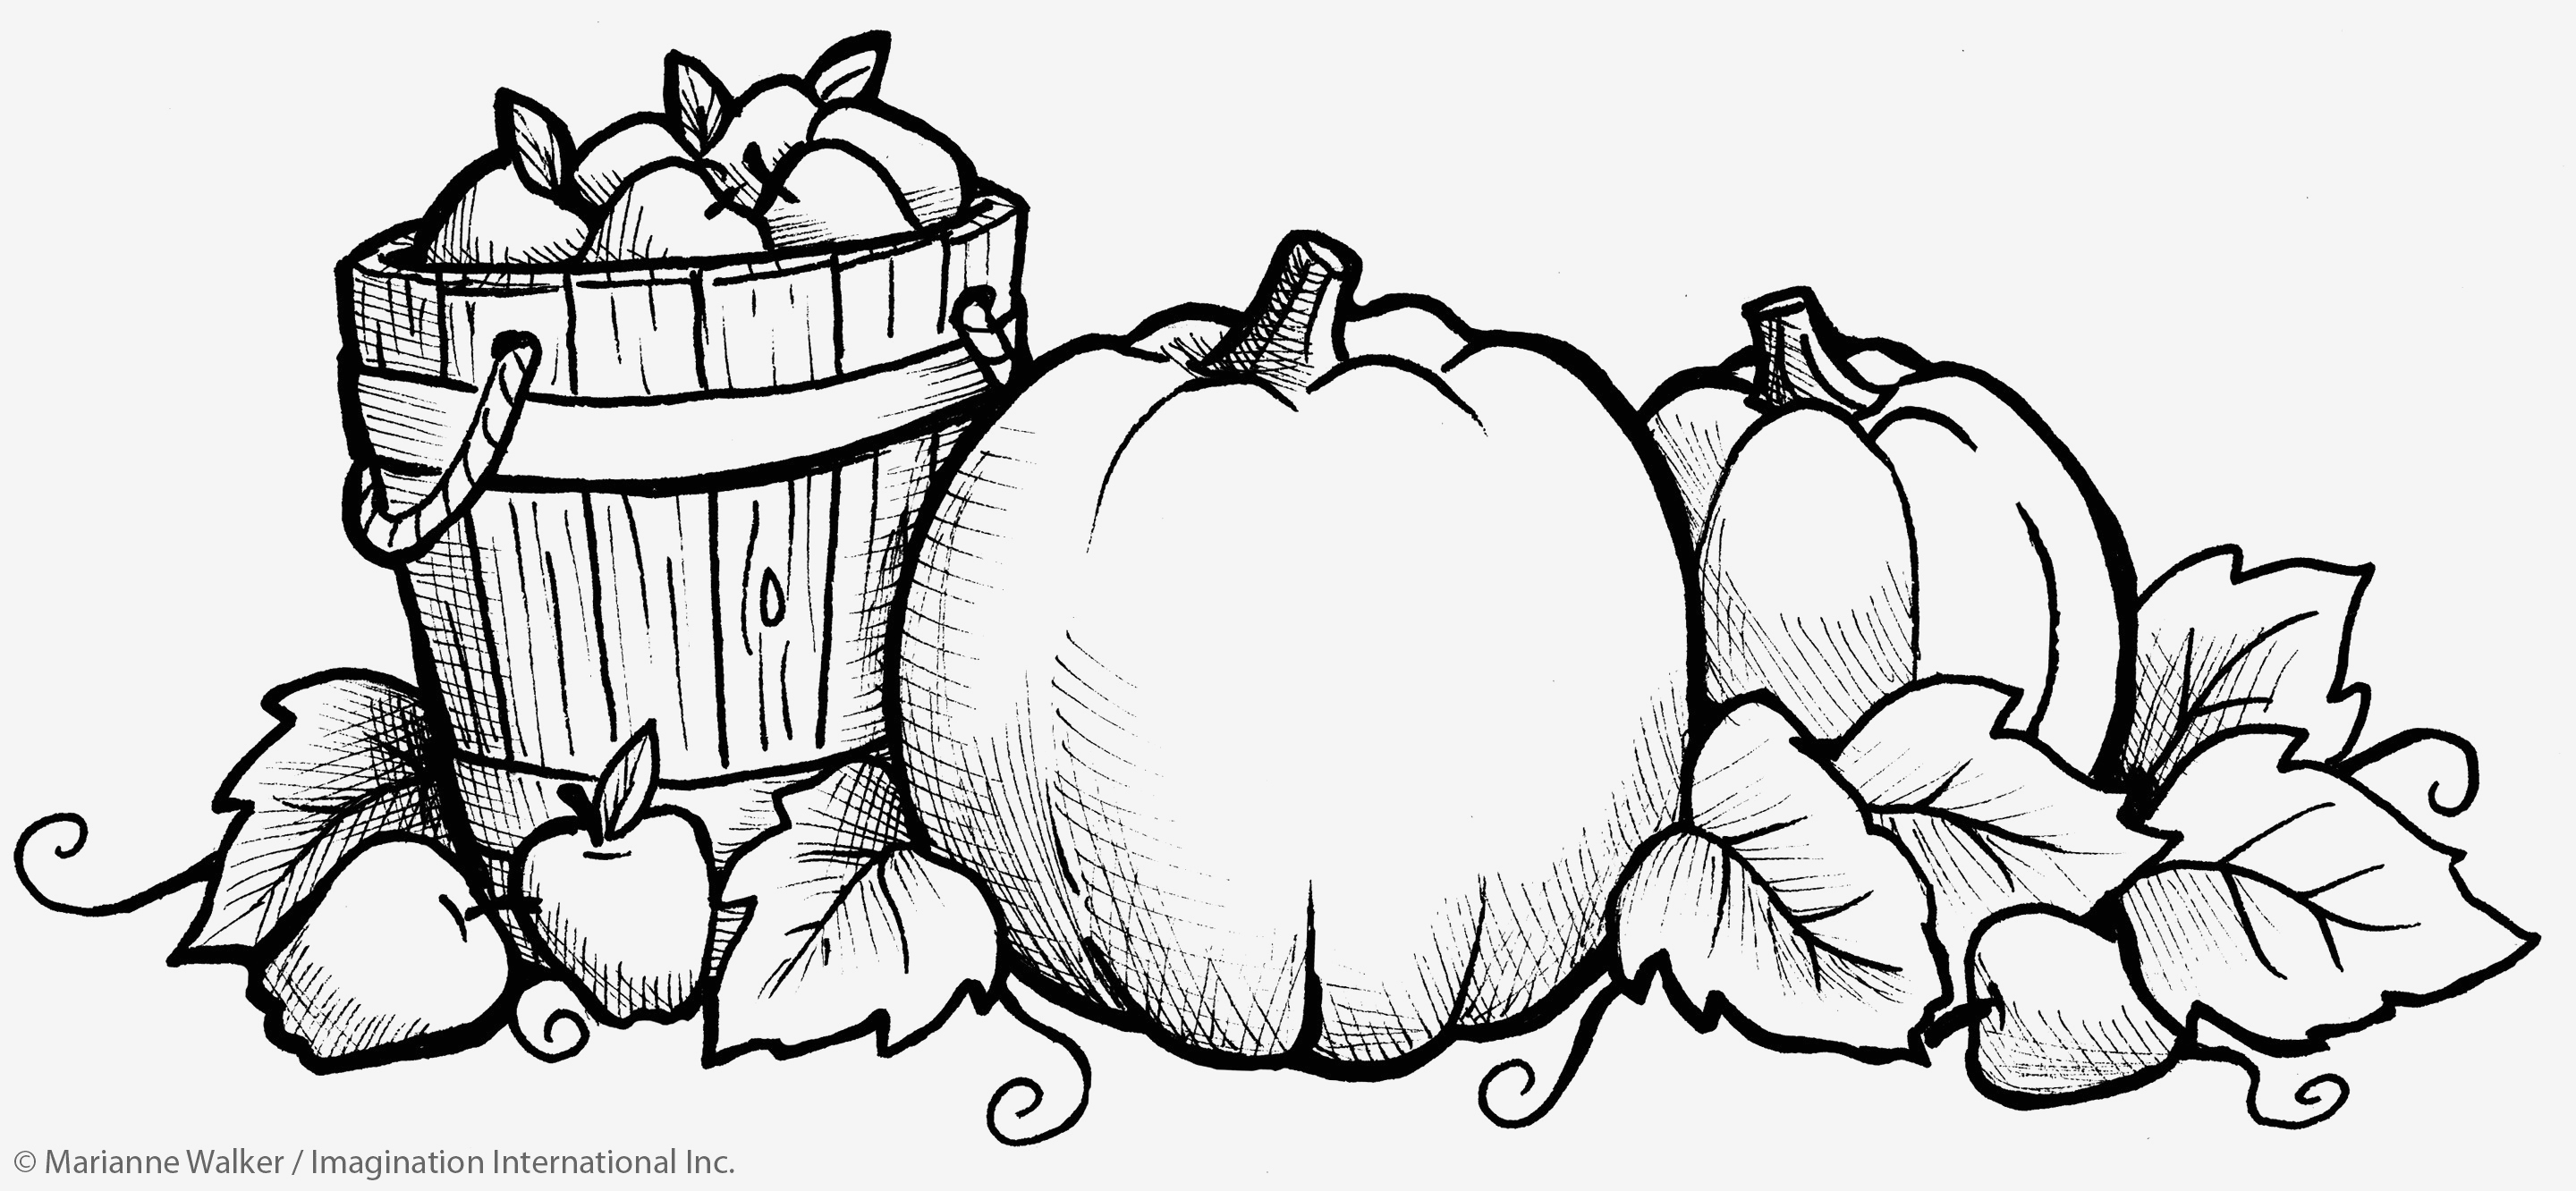 preschoolers coloring pages Download-Pretty Coloring Pages Printable Preschool Coloring Pages Fresh Fall Coloring Pages 0d Page for Kids 1-h